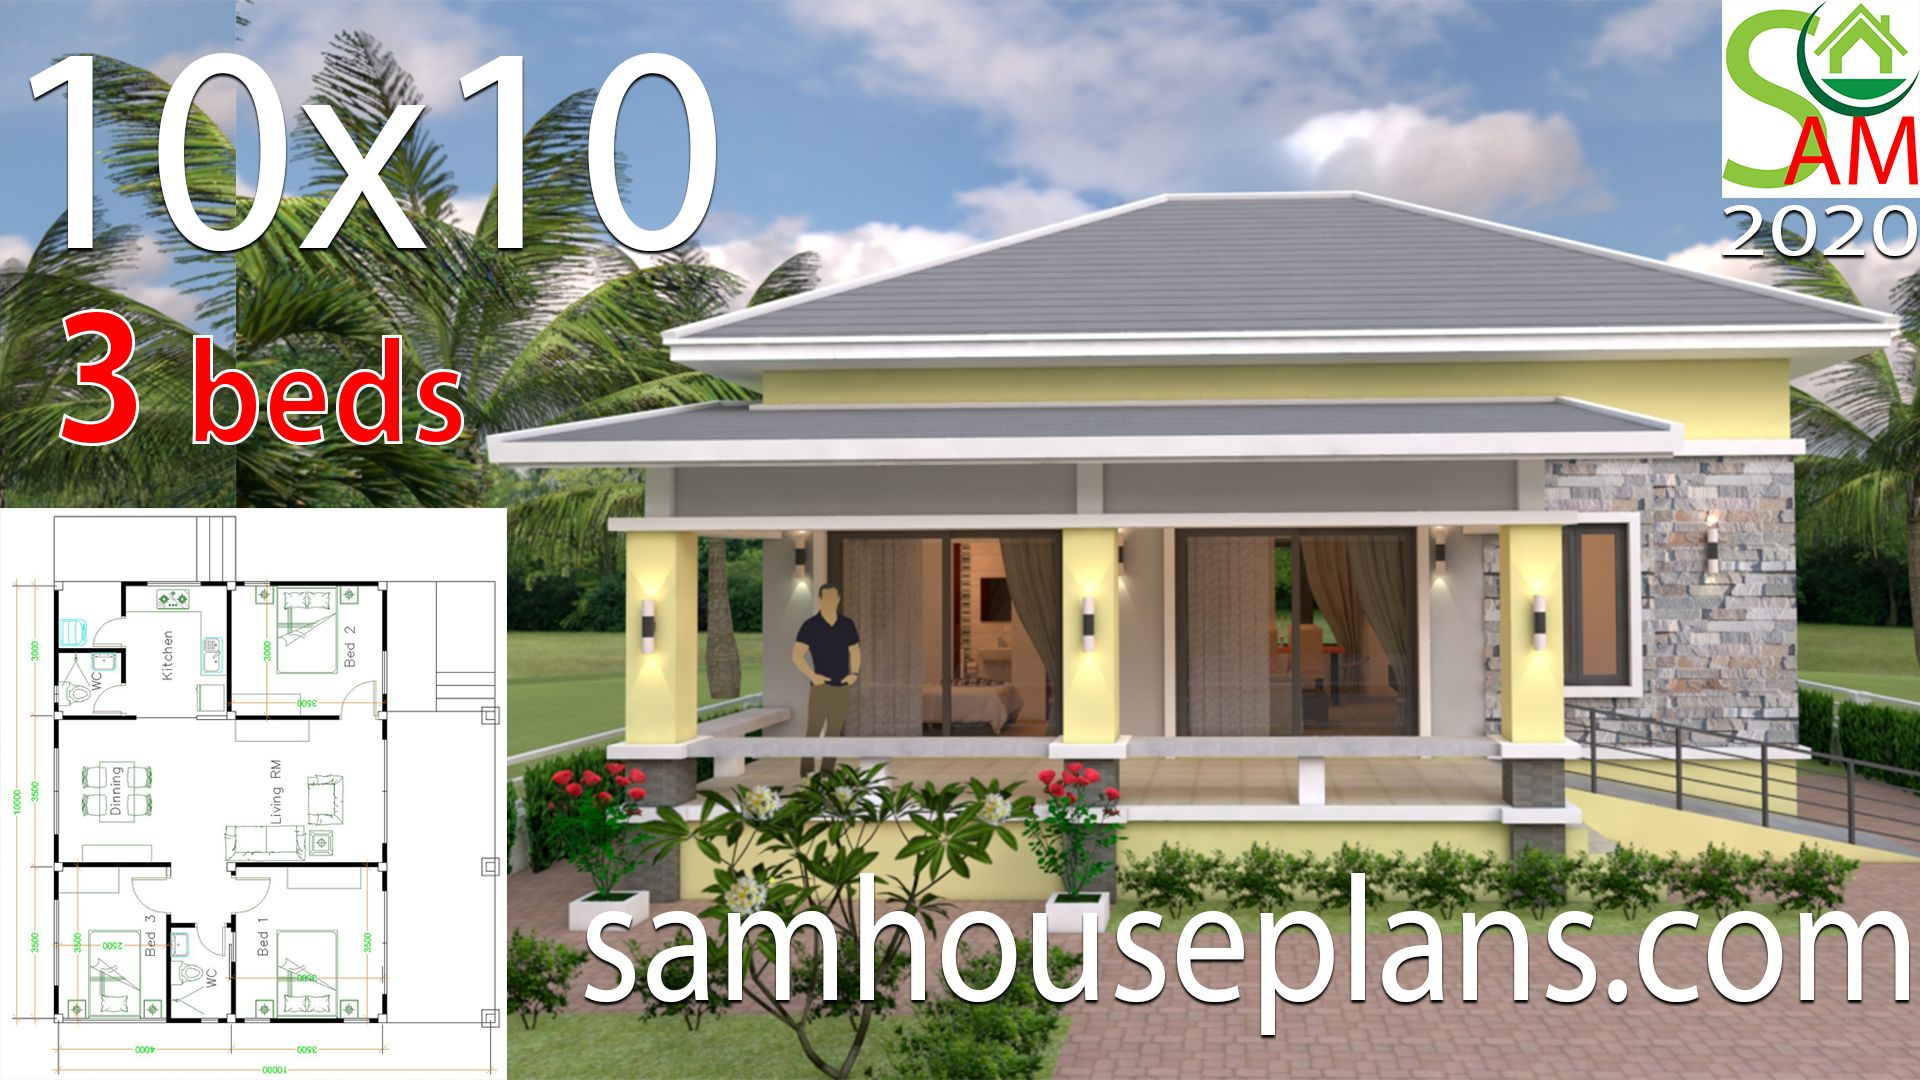 Find Your House Plans Below - House Plans 3d in 2020 | Small house design,  Small house design plans, Small house